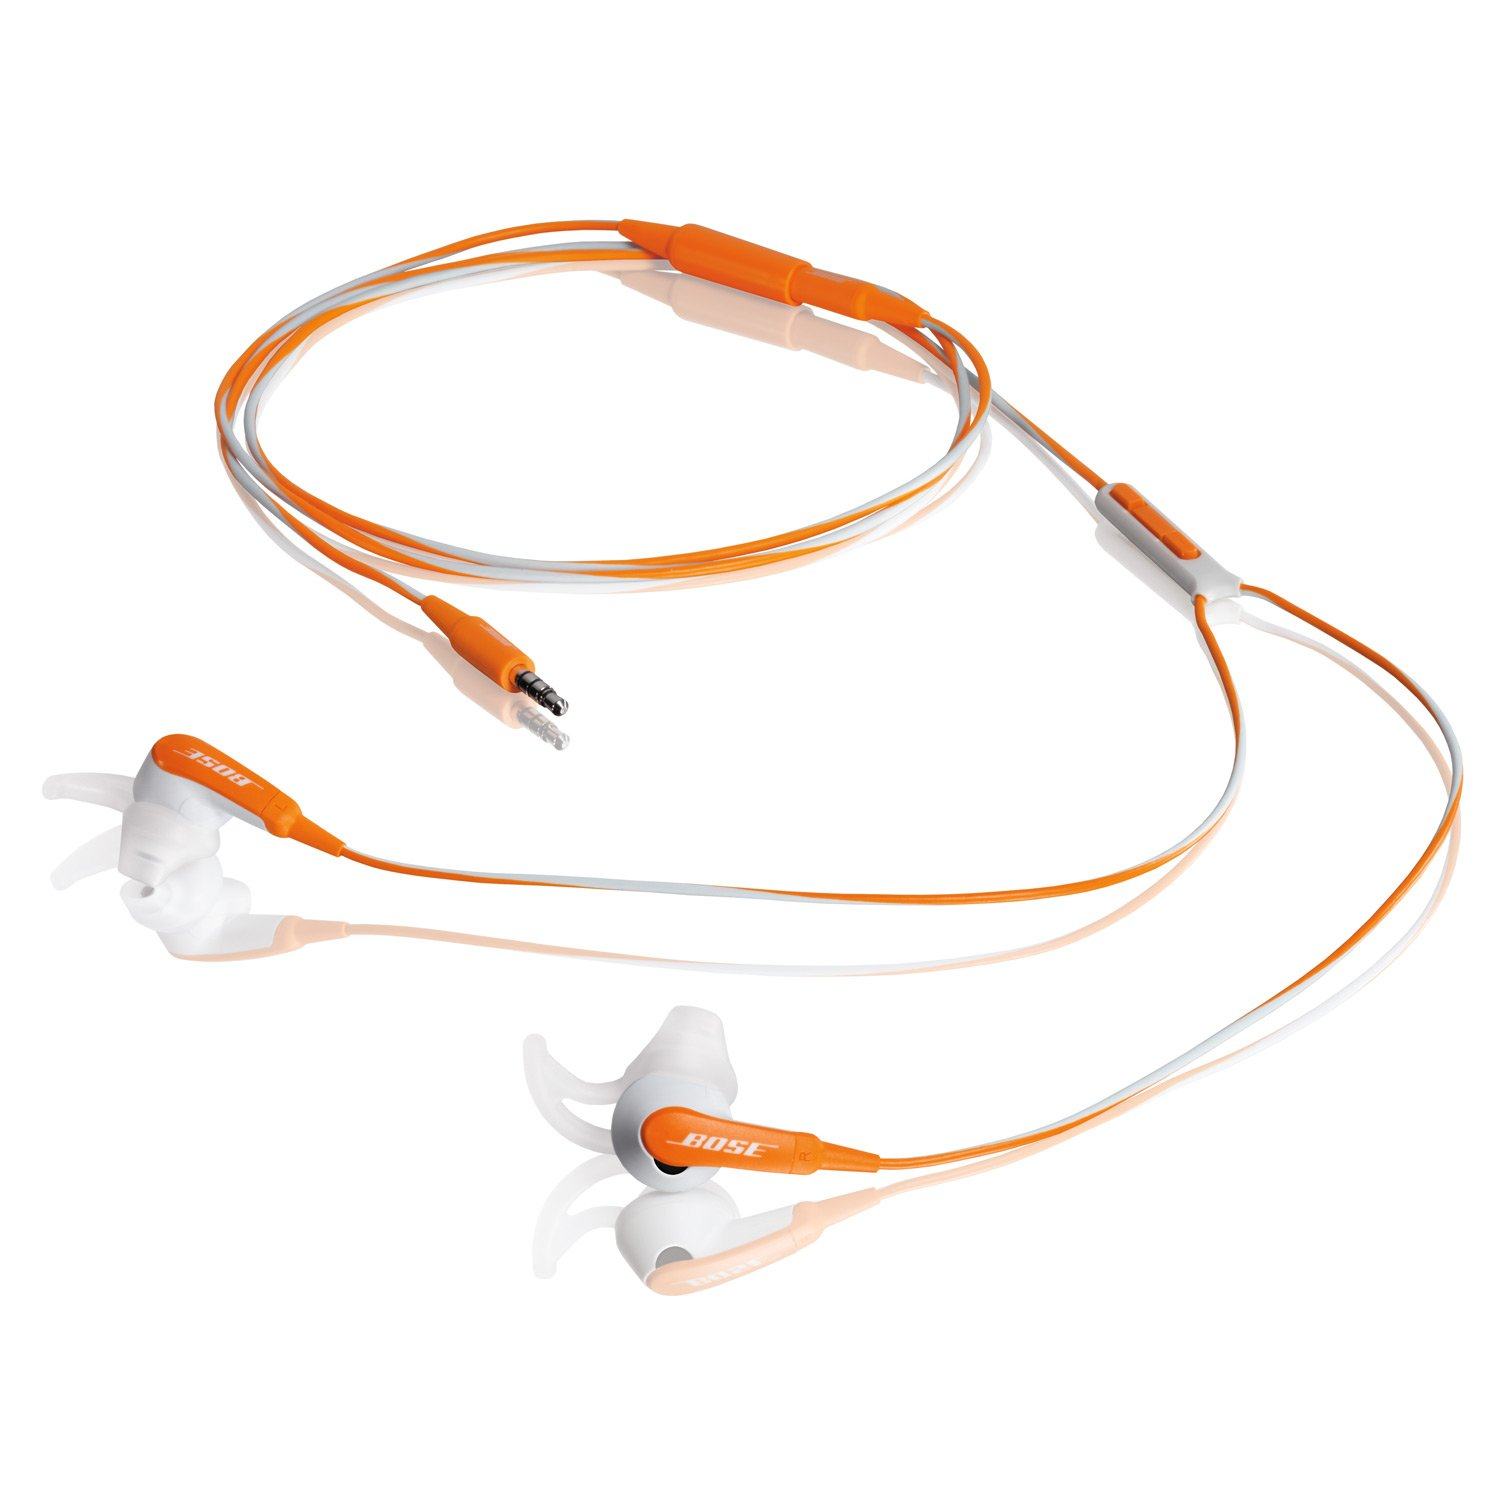 1. Bose SIE2i Sport Headphones - best earbuds for running